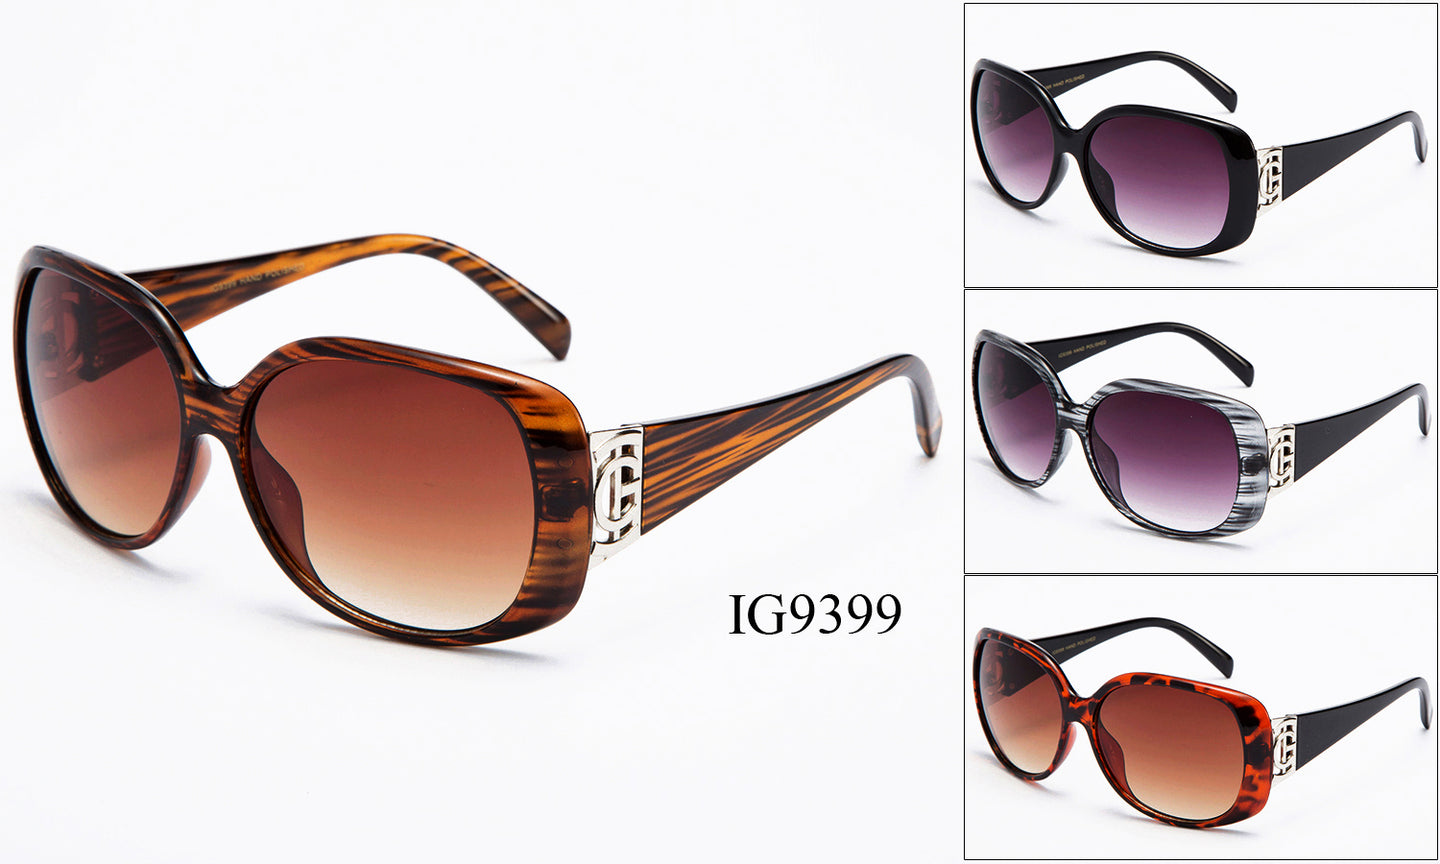 Womens Wholesale Wood grain Inspired Sunglasses 1 Dozen IG9399 - BuyWholesaleSunglasses.com